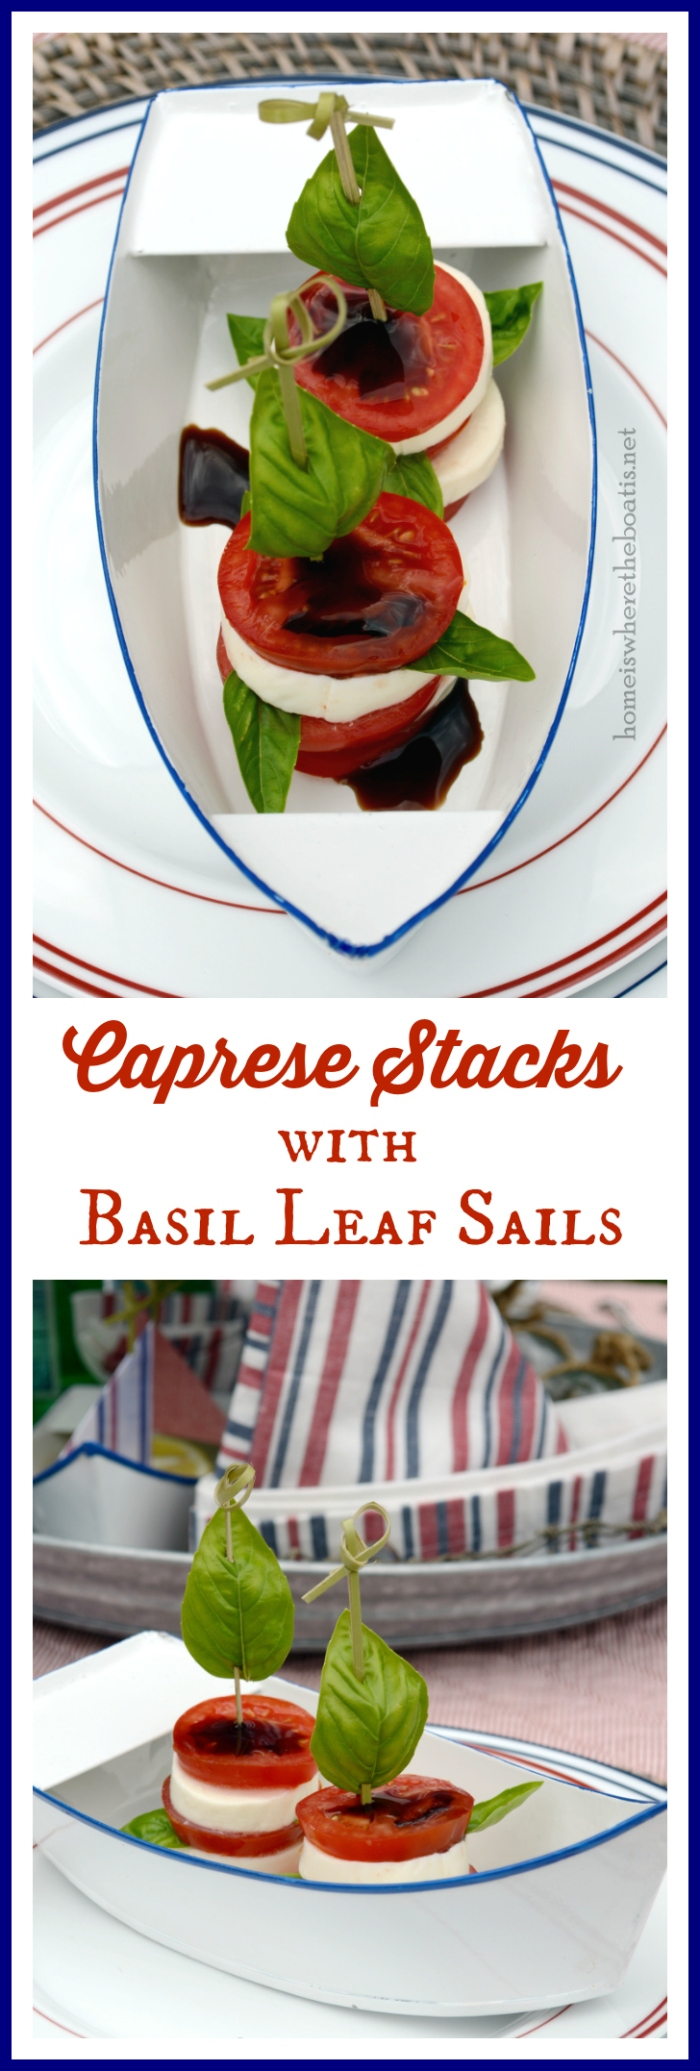 Caprese Stacks with Basil Leaf Sails